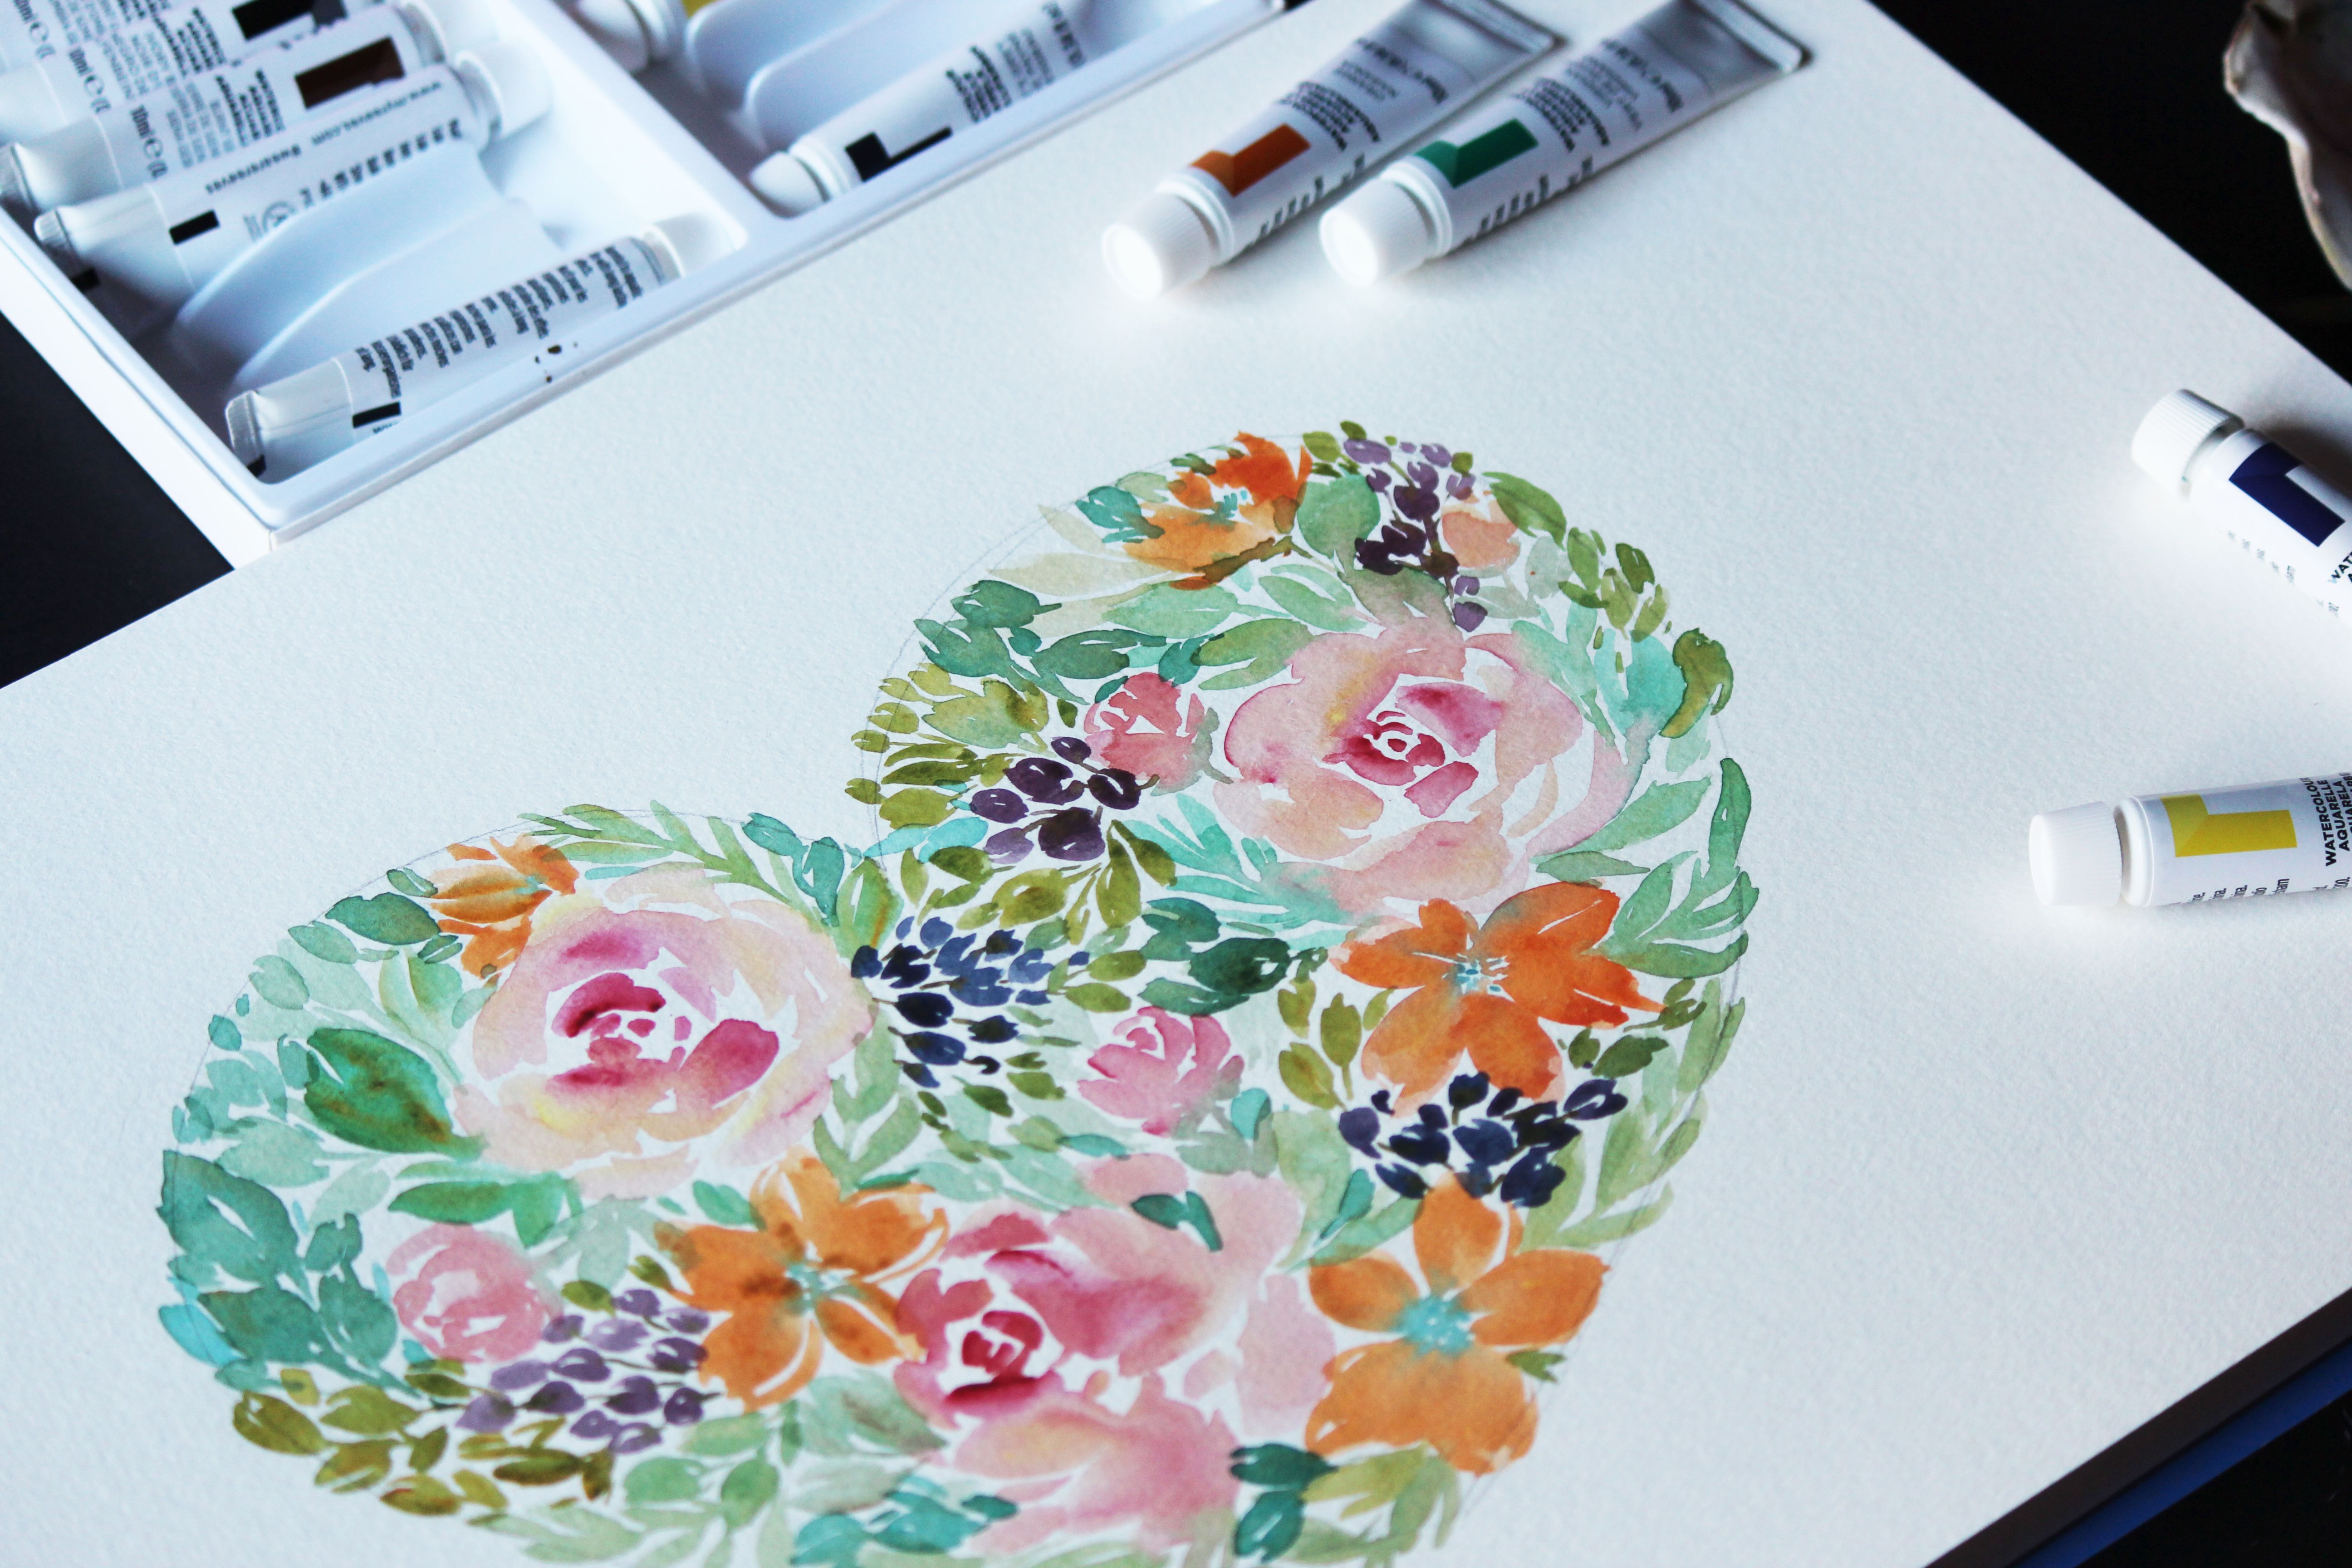 Tutorial On How To Paint A Watercolour Flower Heart By Clarice